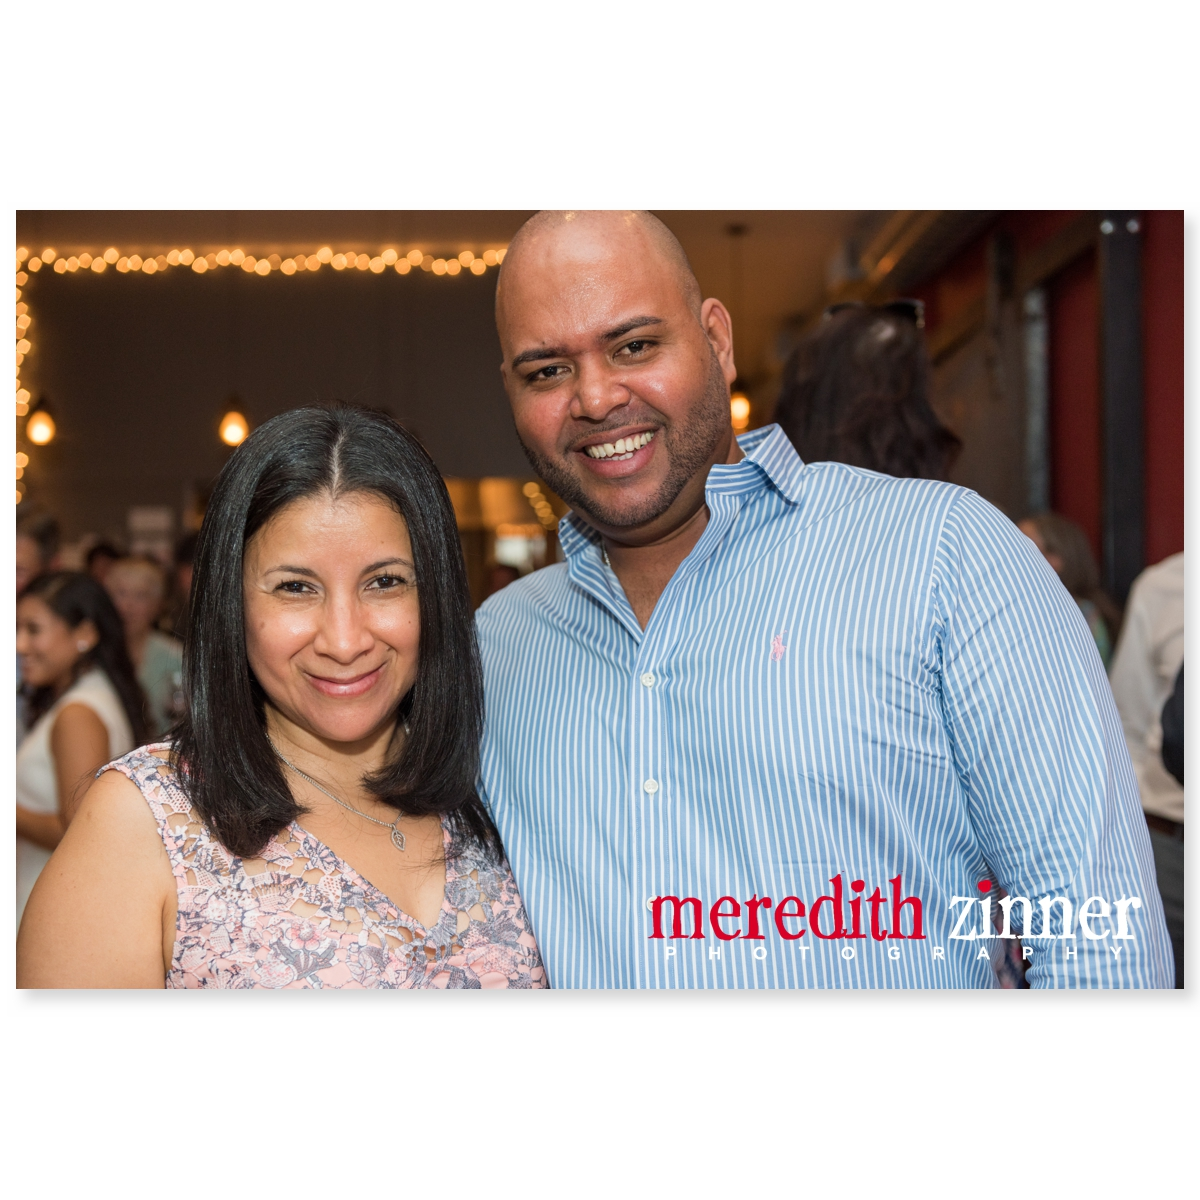 Meredith_Zinner_Photography_StilesCelebration_0071